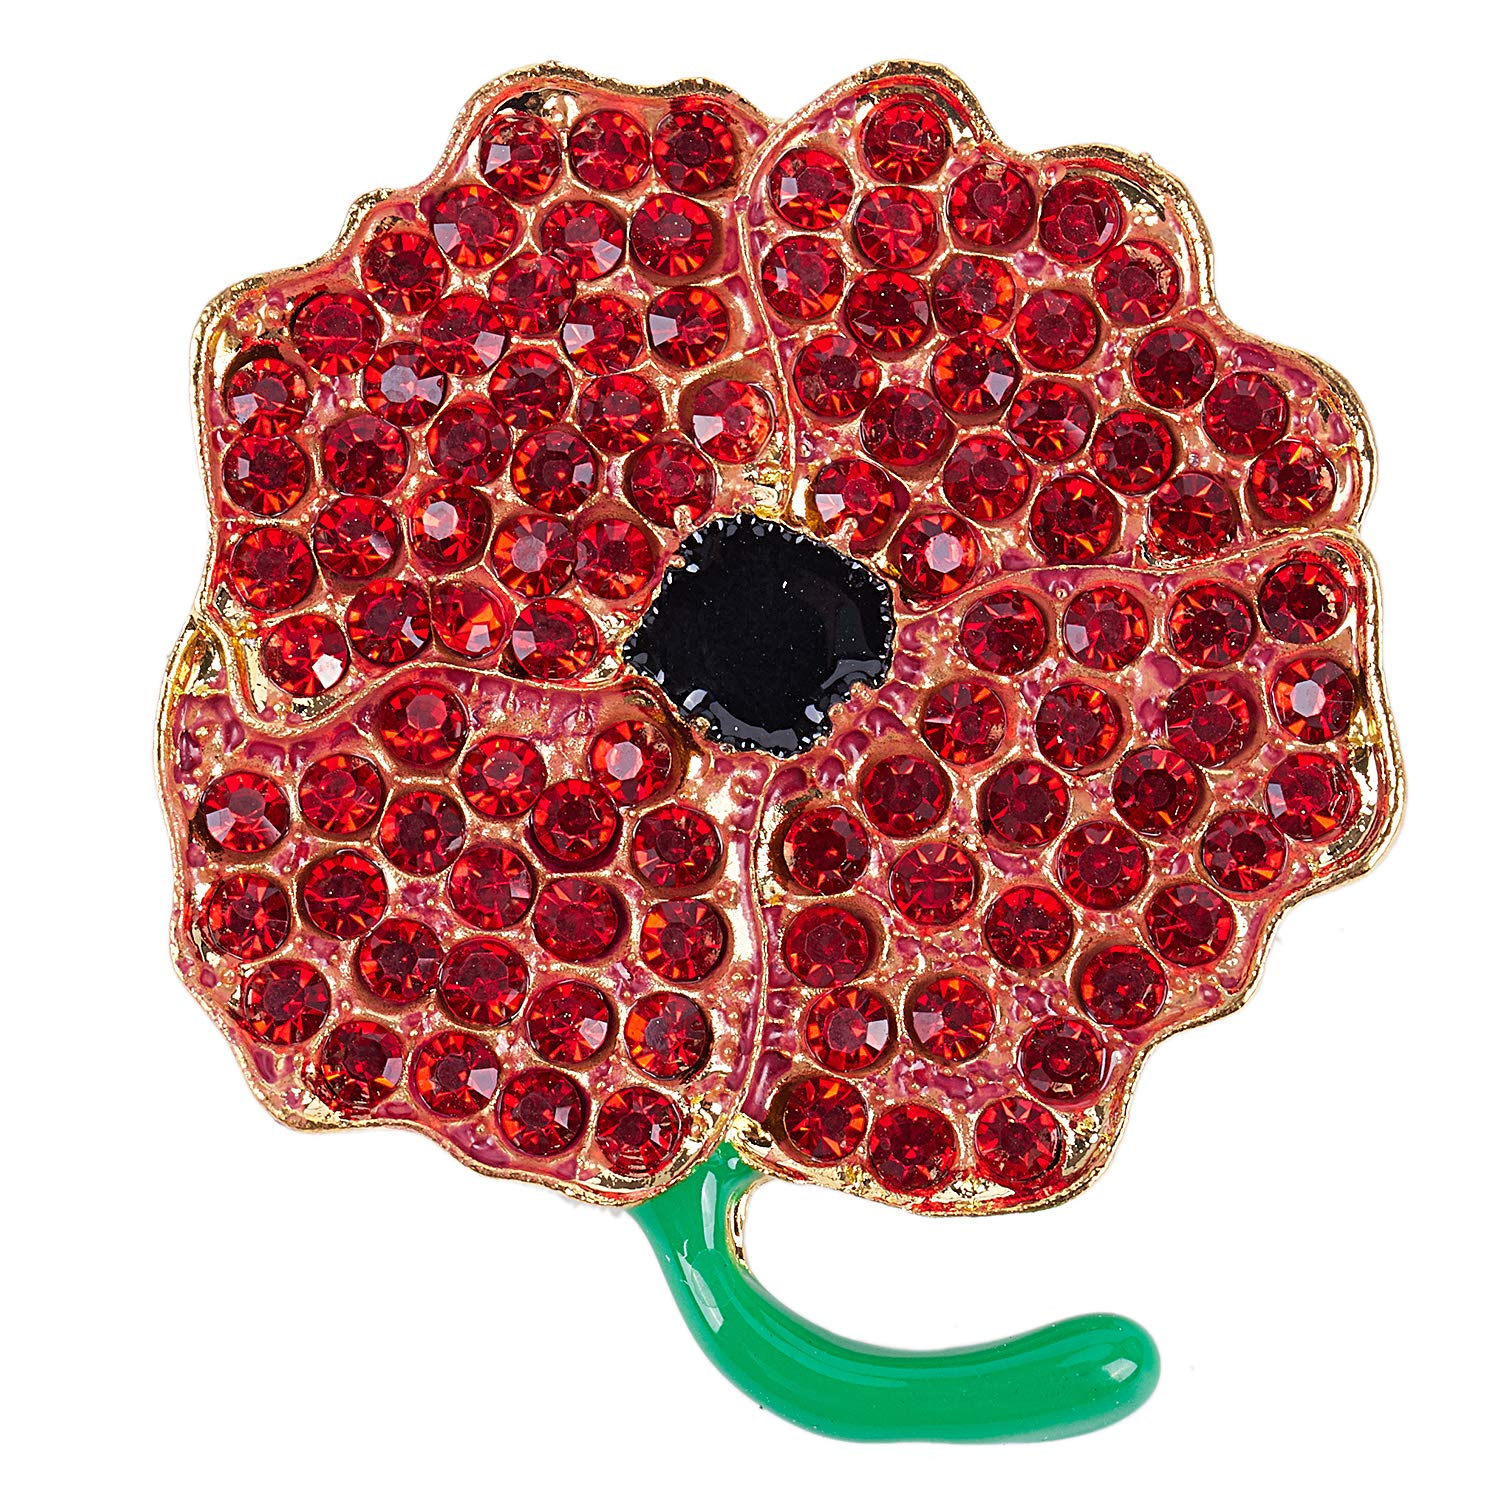 SODIAL Poppy Brooch Symbolic Crystal Diamante Remembrance Day Poppy Pin Badge (4#) 169077